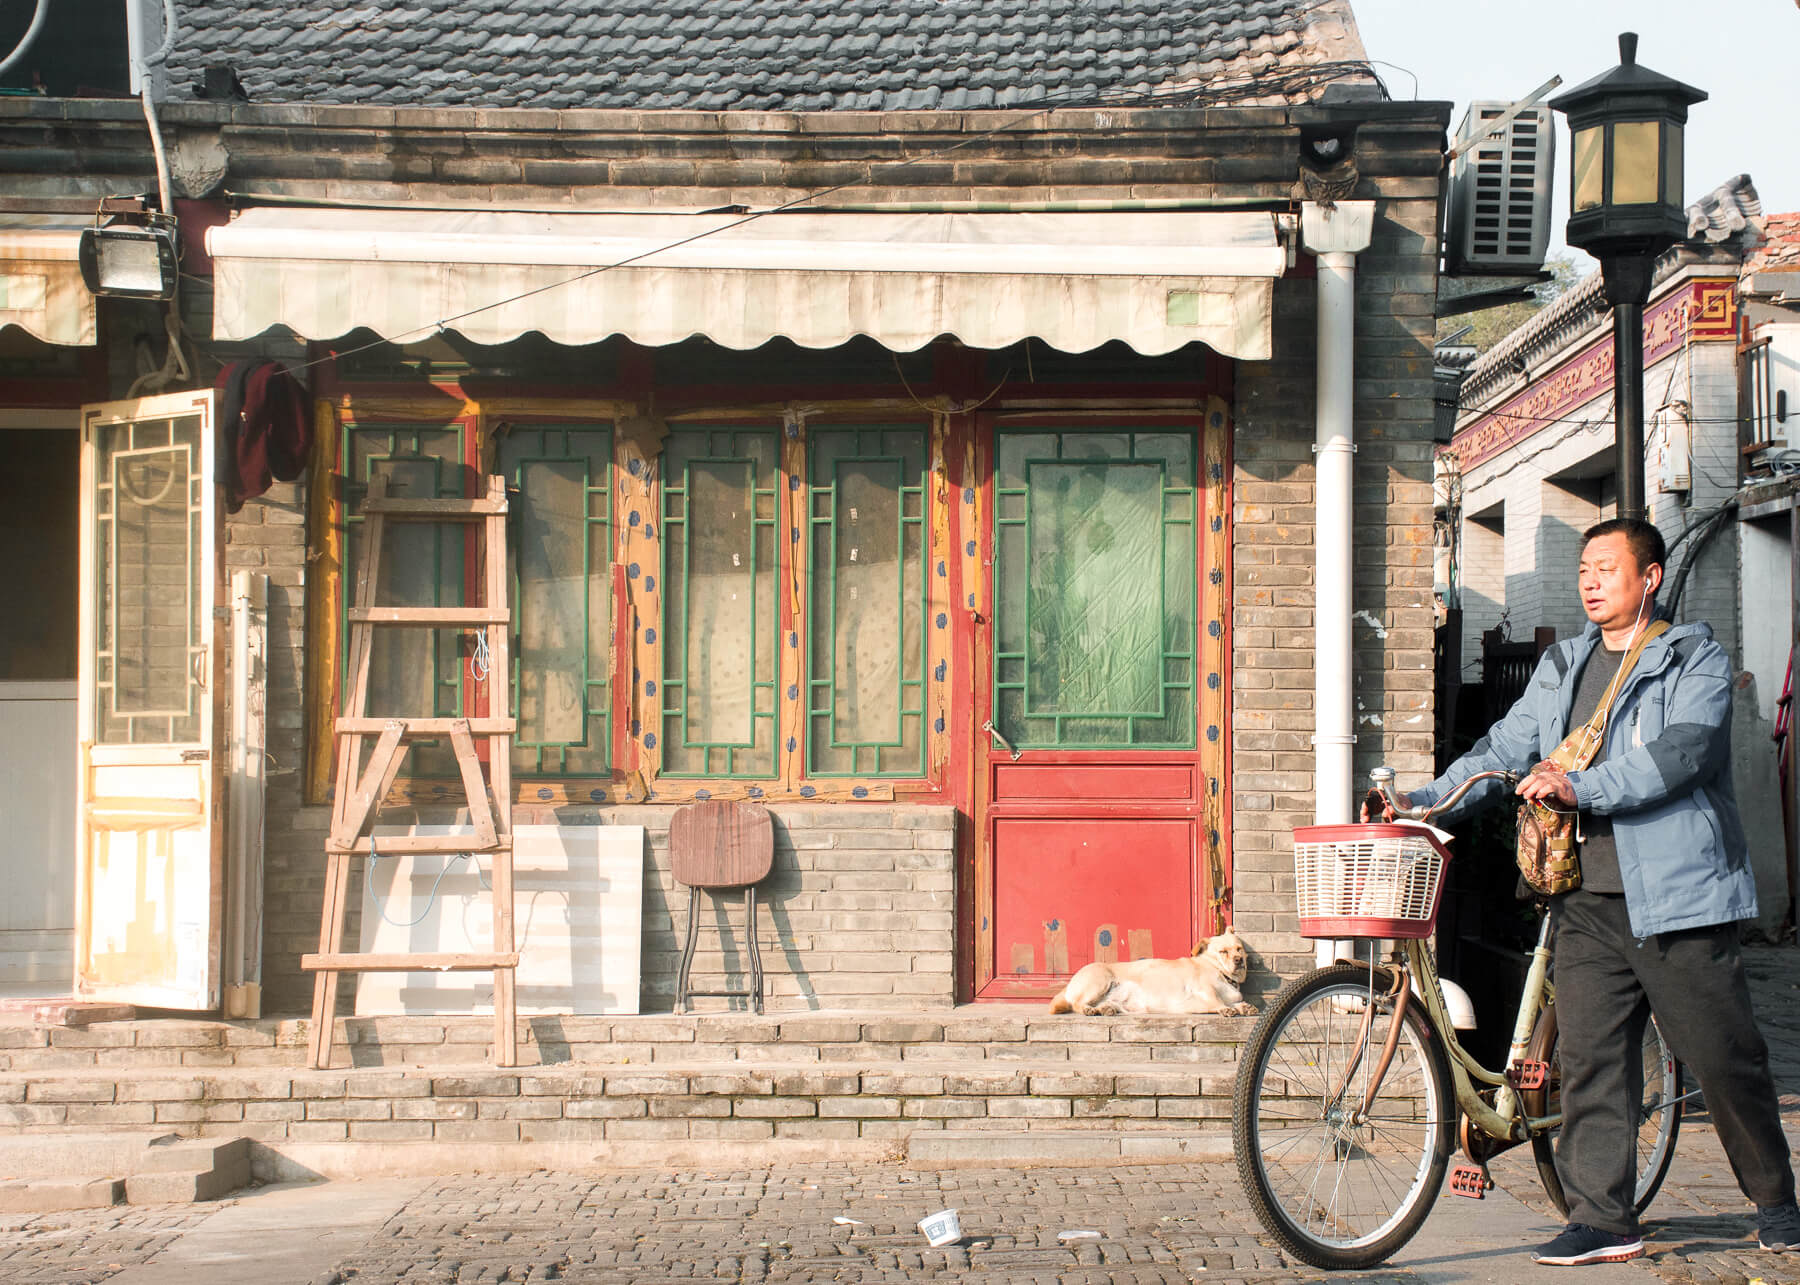 A Chinese man pushing his bicycle in front of an old building with a dog sleeping on the front porch